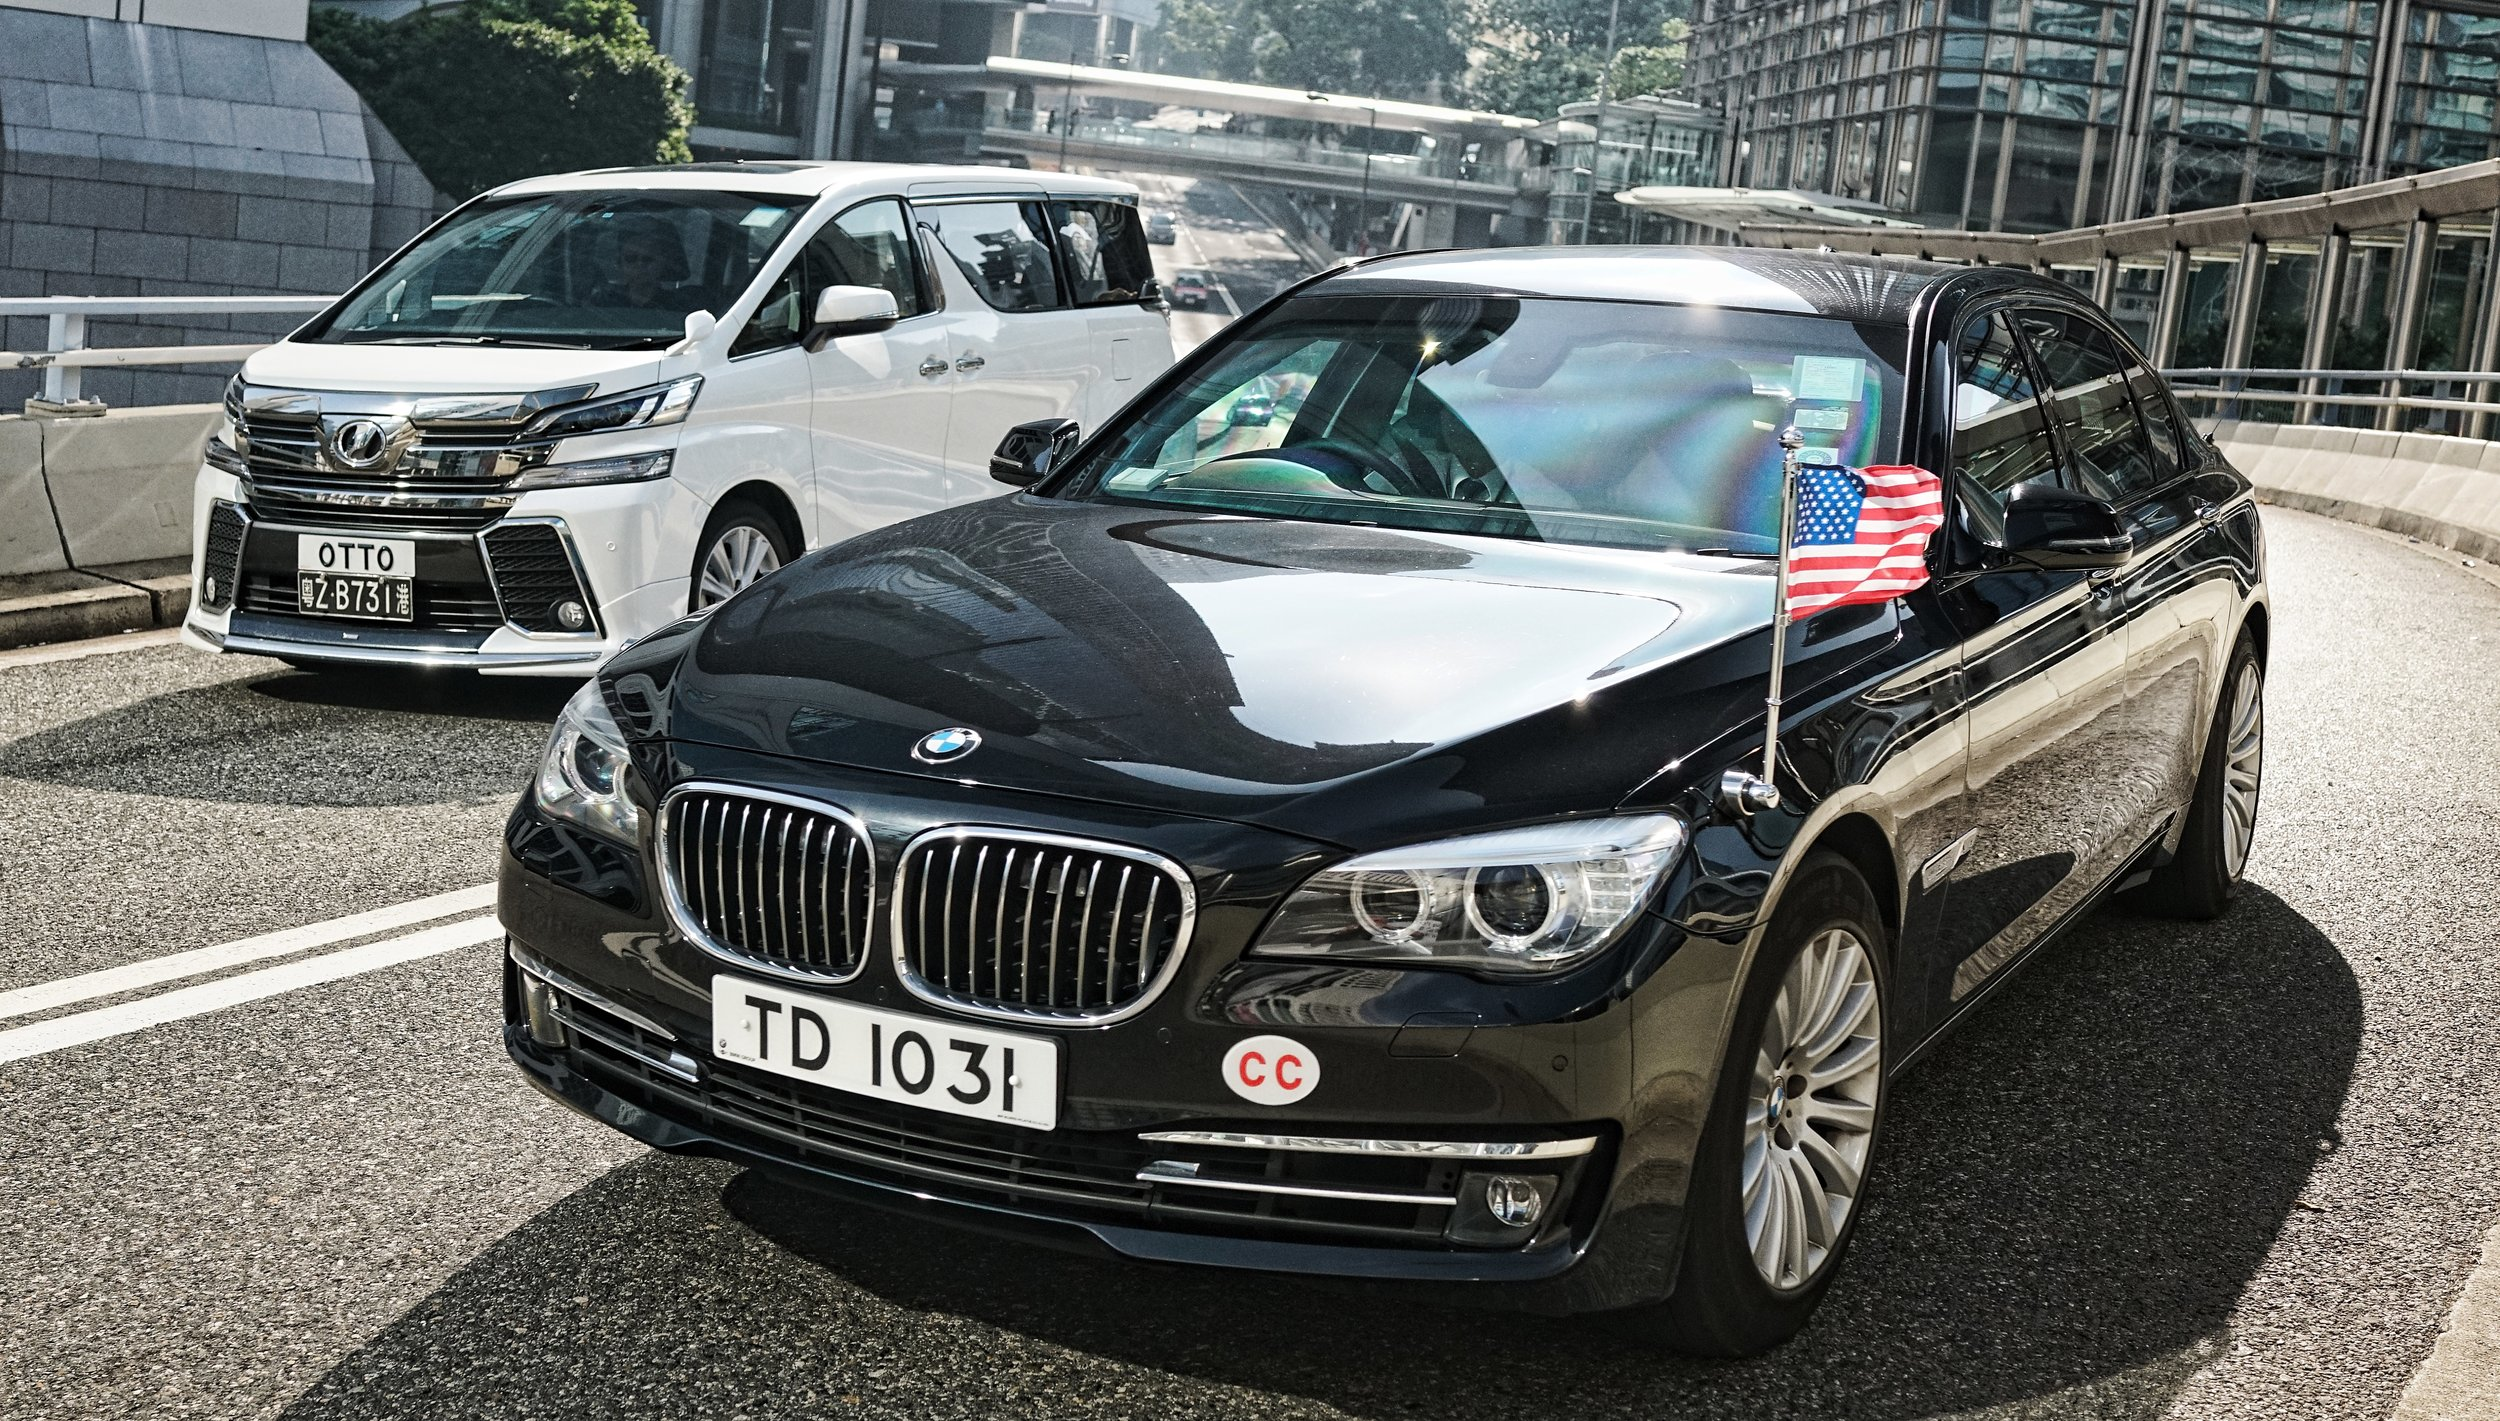 One of my favourite images - the US Consulate official BMW, how very cool..